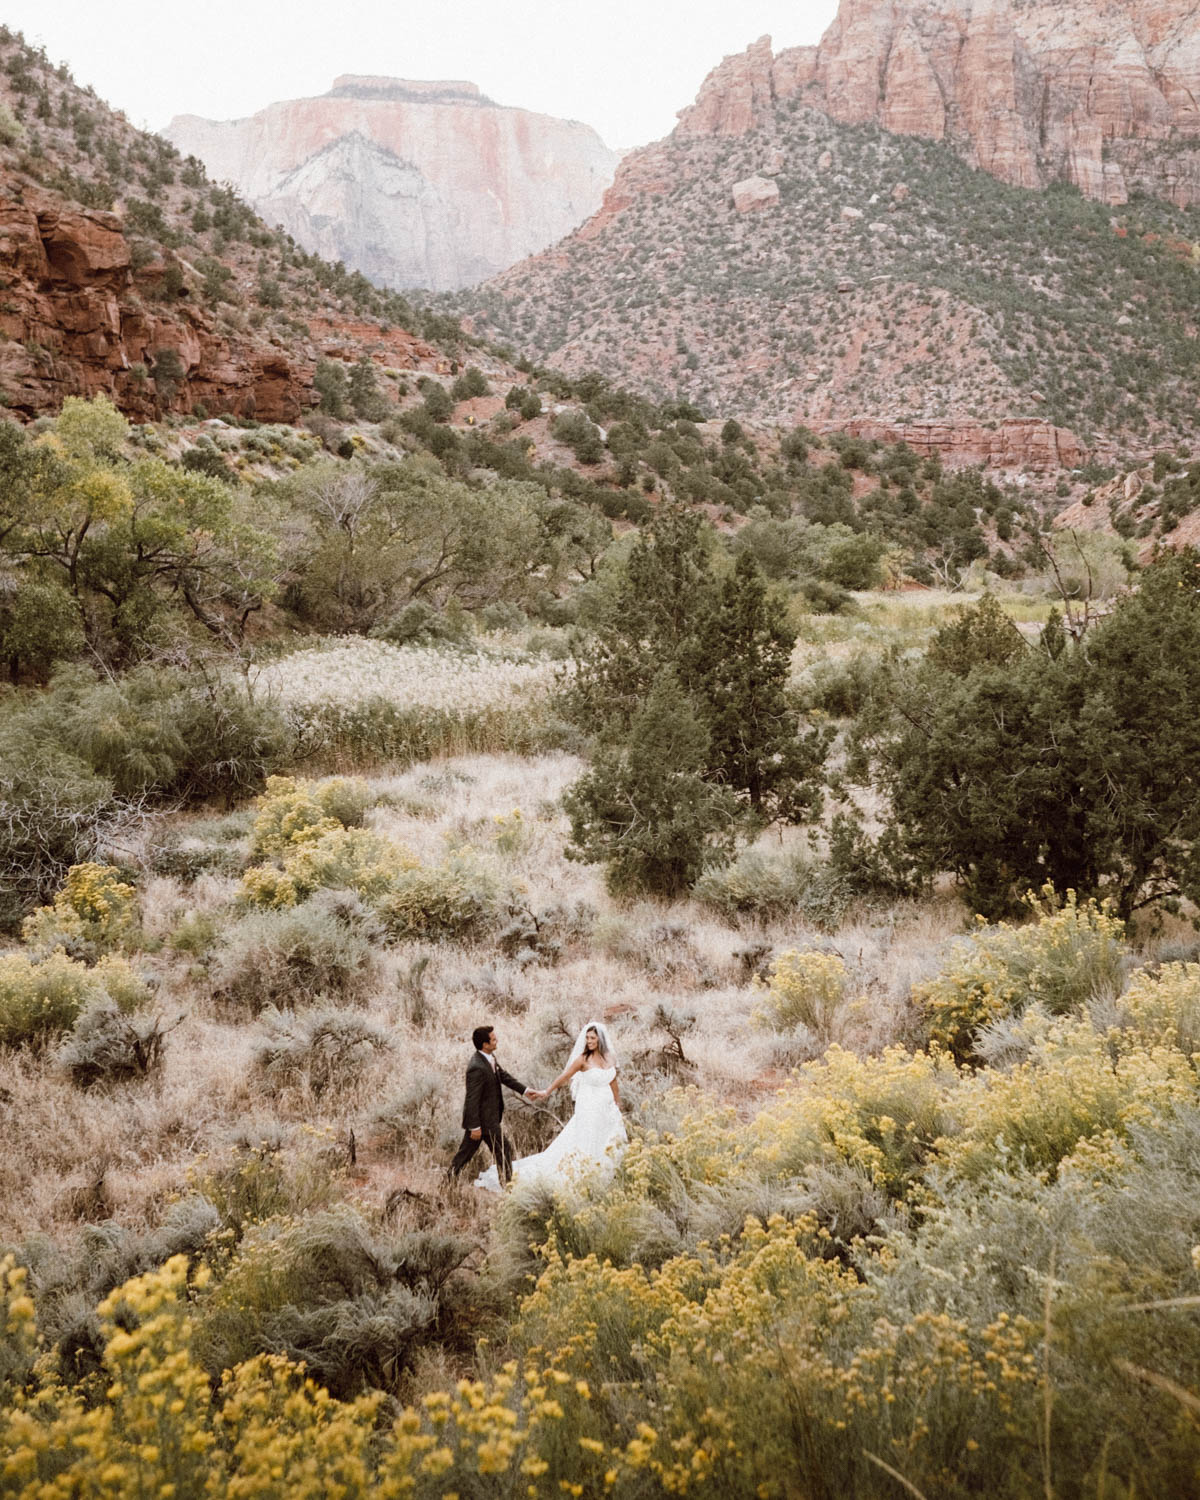 zion national park wedding beautiful walk in nature